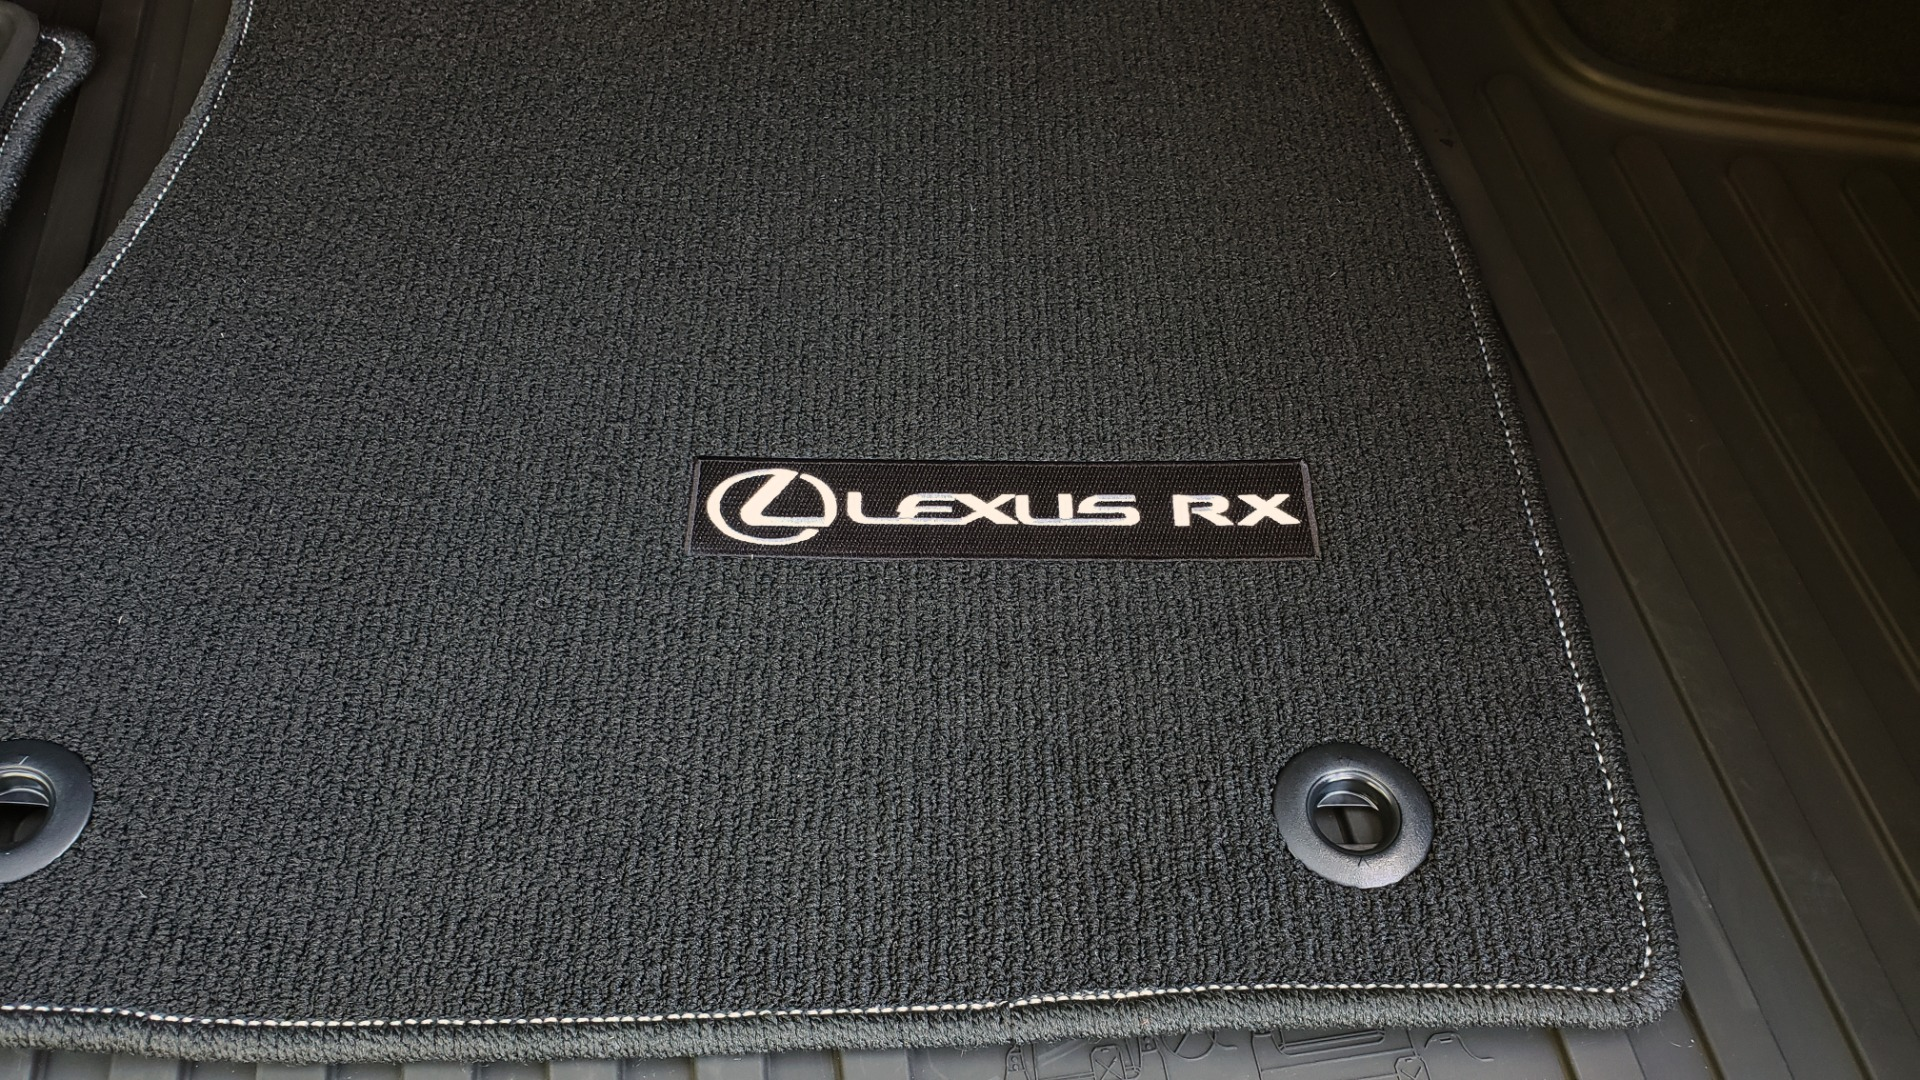 Used 2016 Lexus RX 350 PREMIUM / AWD / VENT SEATS / SUNROOF / BSM for sale Sold at Formula Imports in Charlotte NC 28227 16